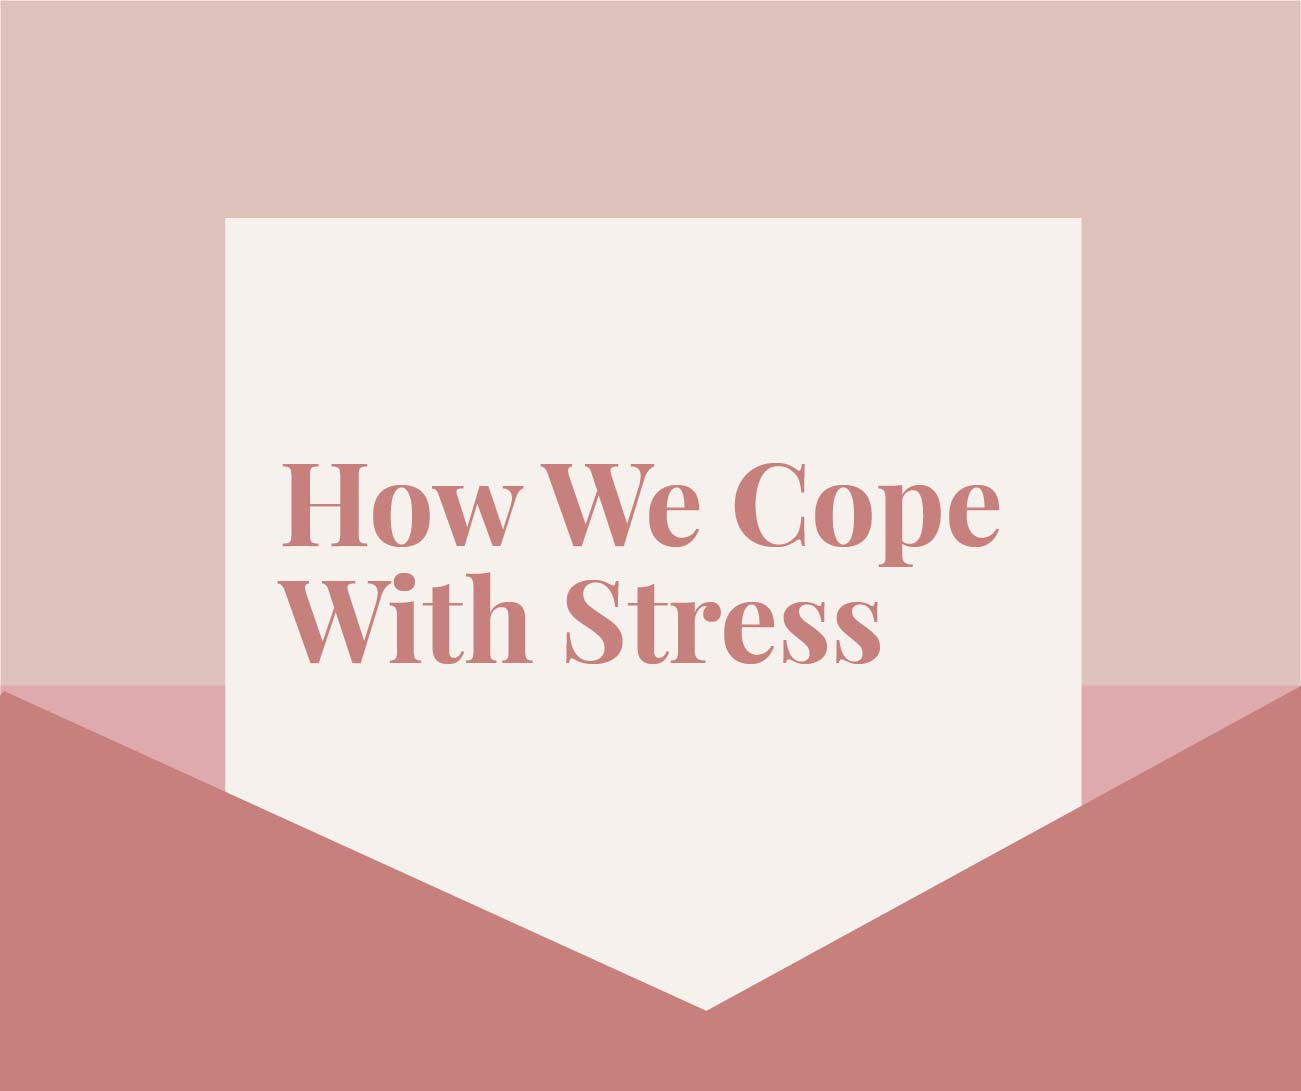 How We Cope With Stress